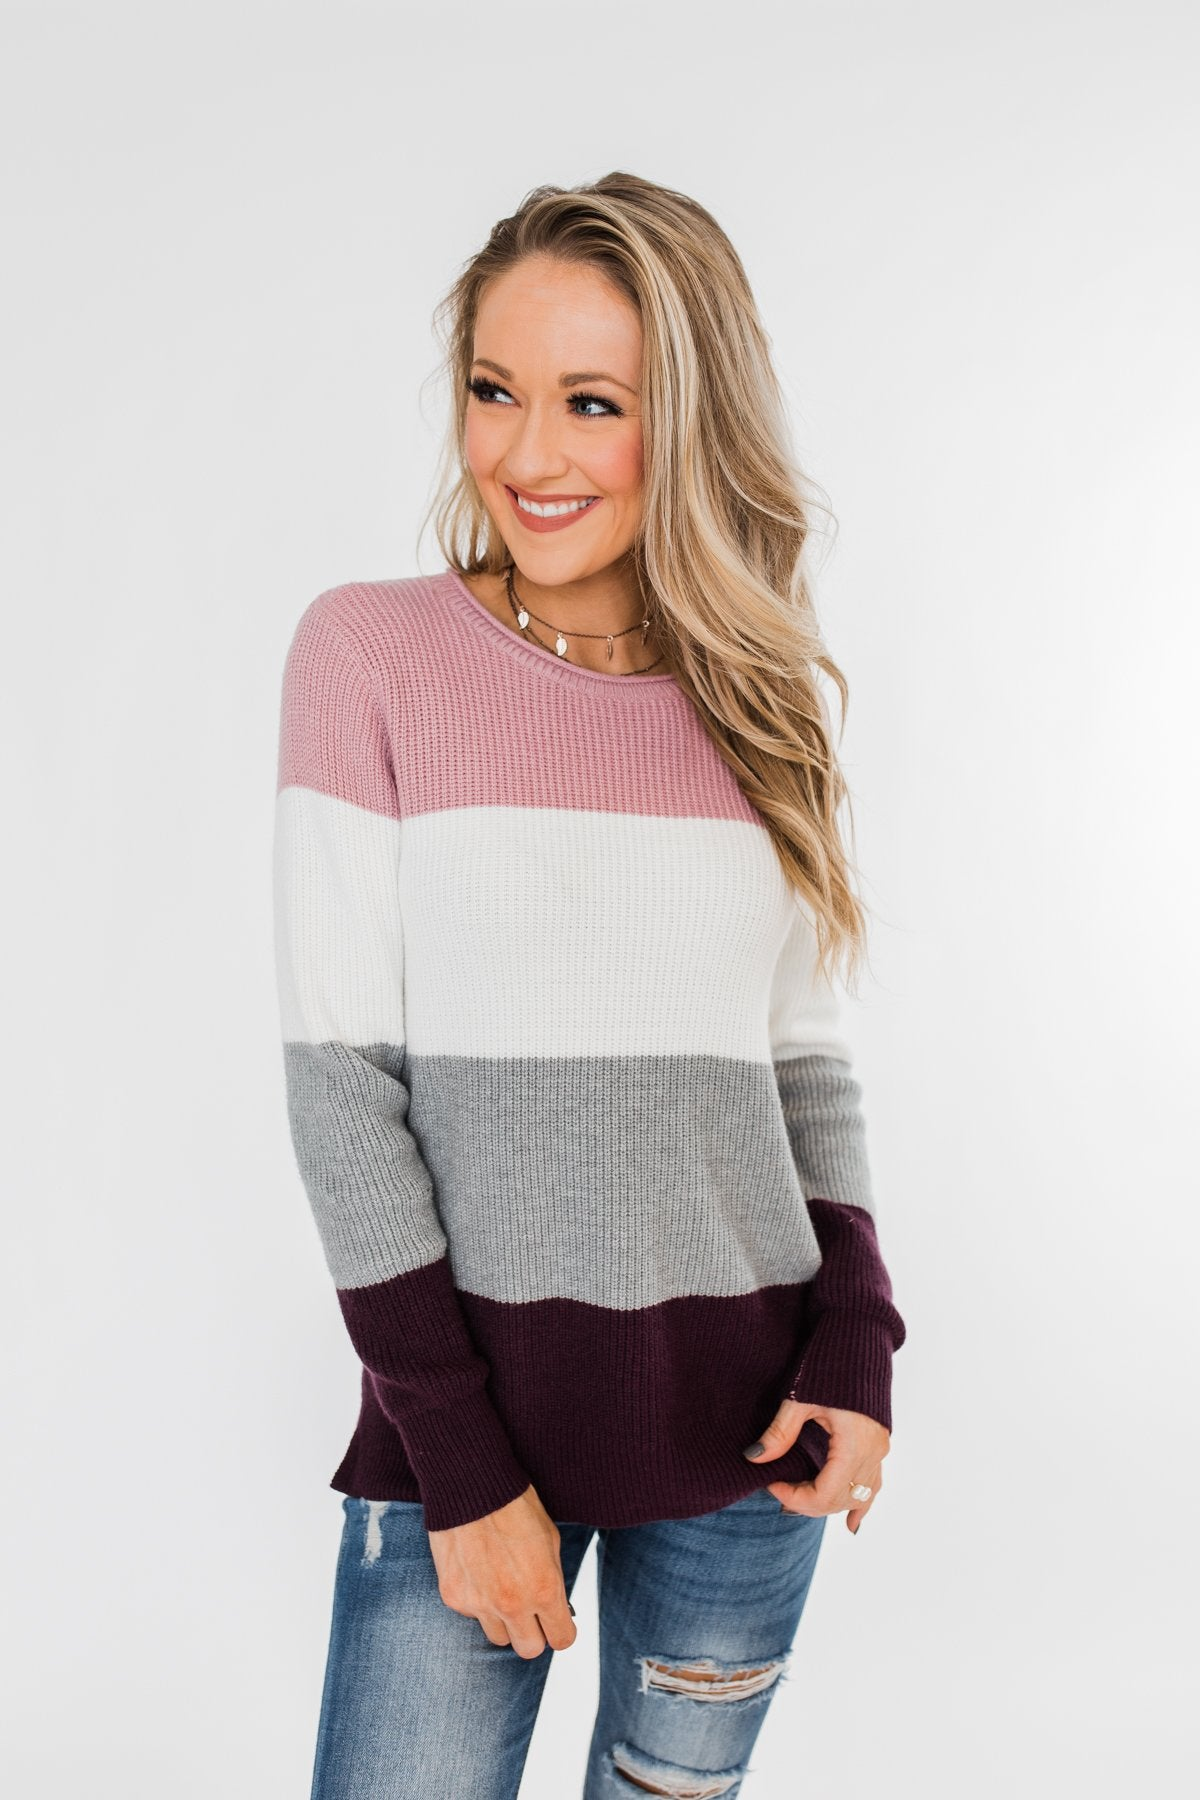 Say You Love Me Knit Sweater- Grey & Plum